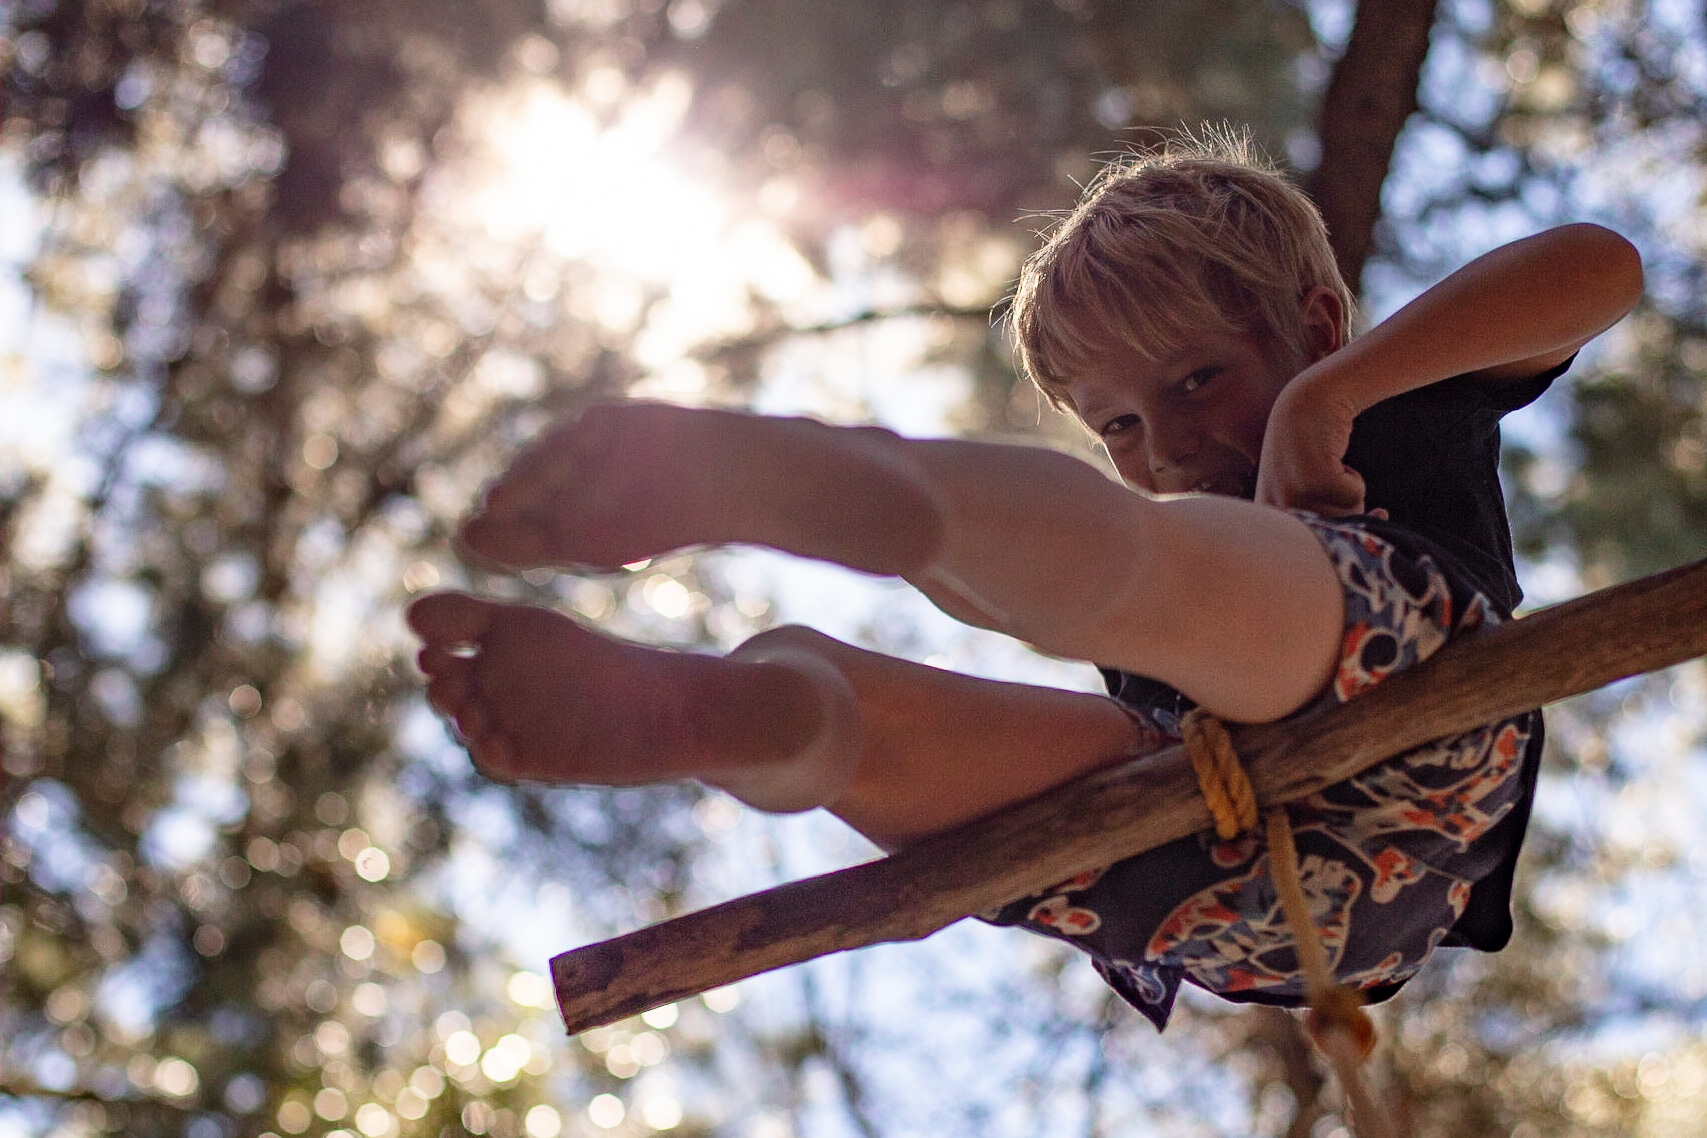 Young boy swinging on tree rope backlit by the sun through leaves by Paul Green Photography